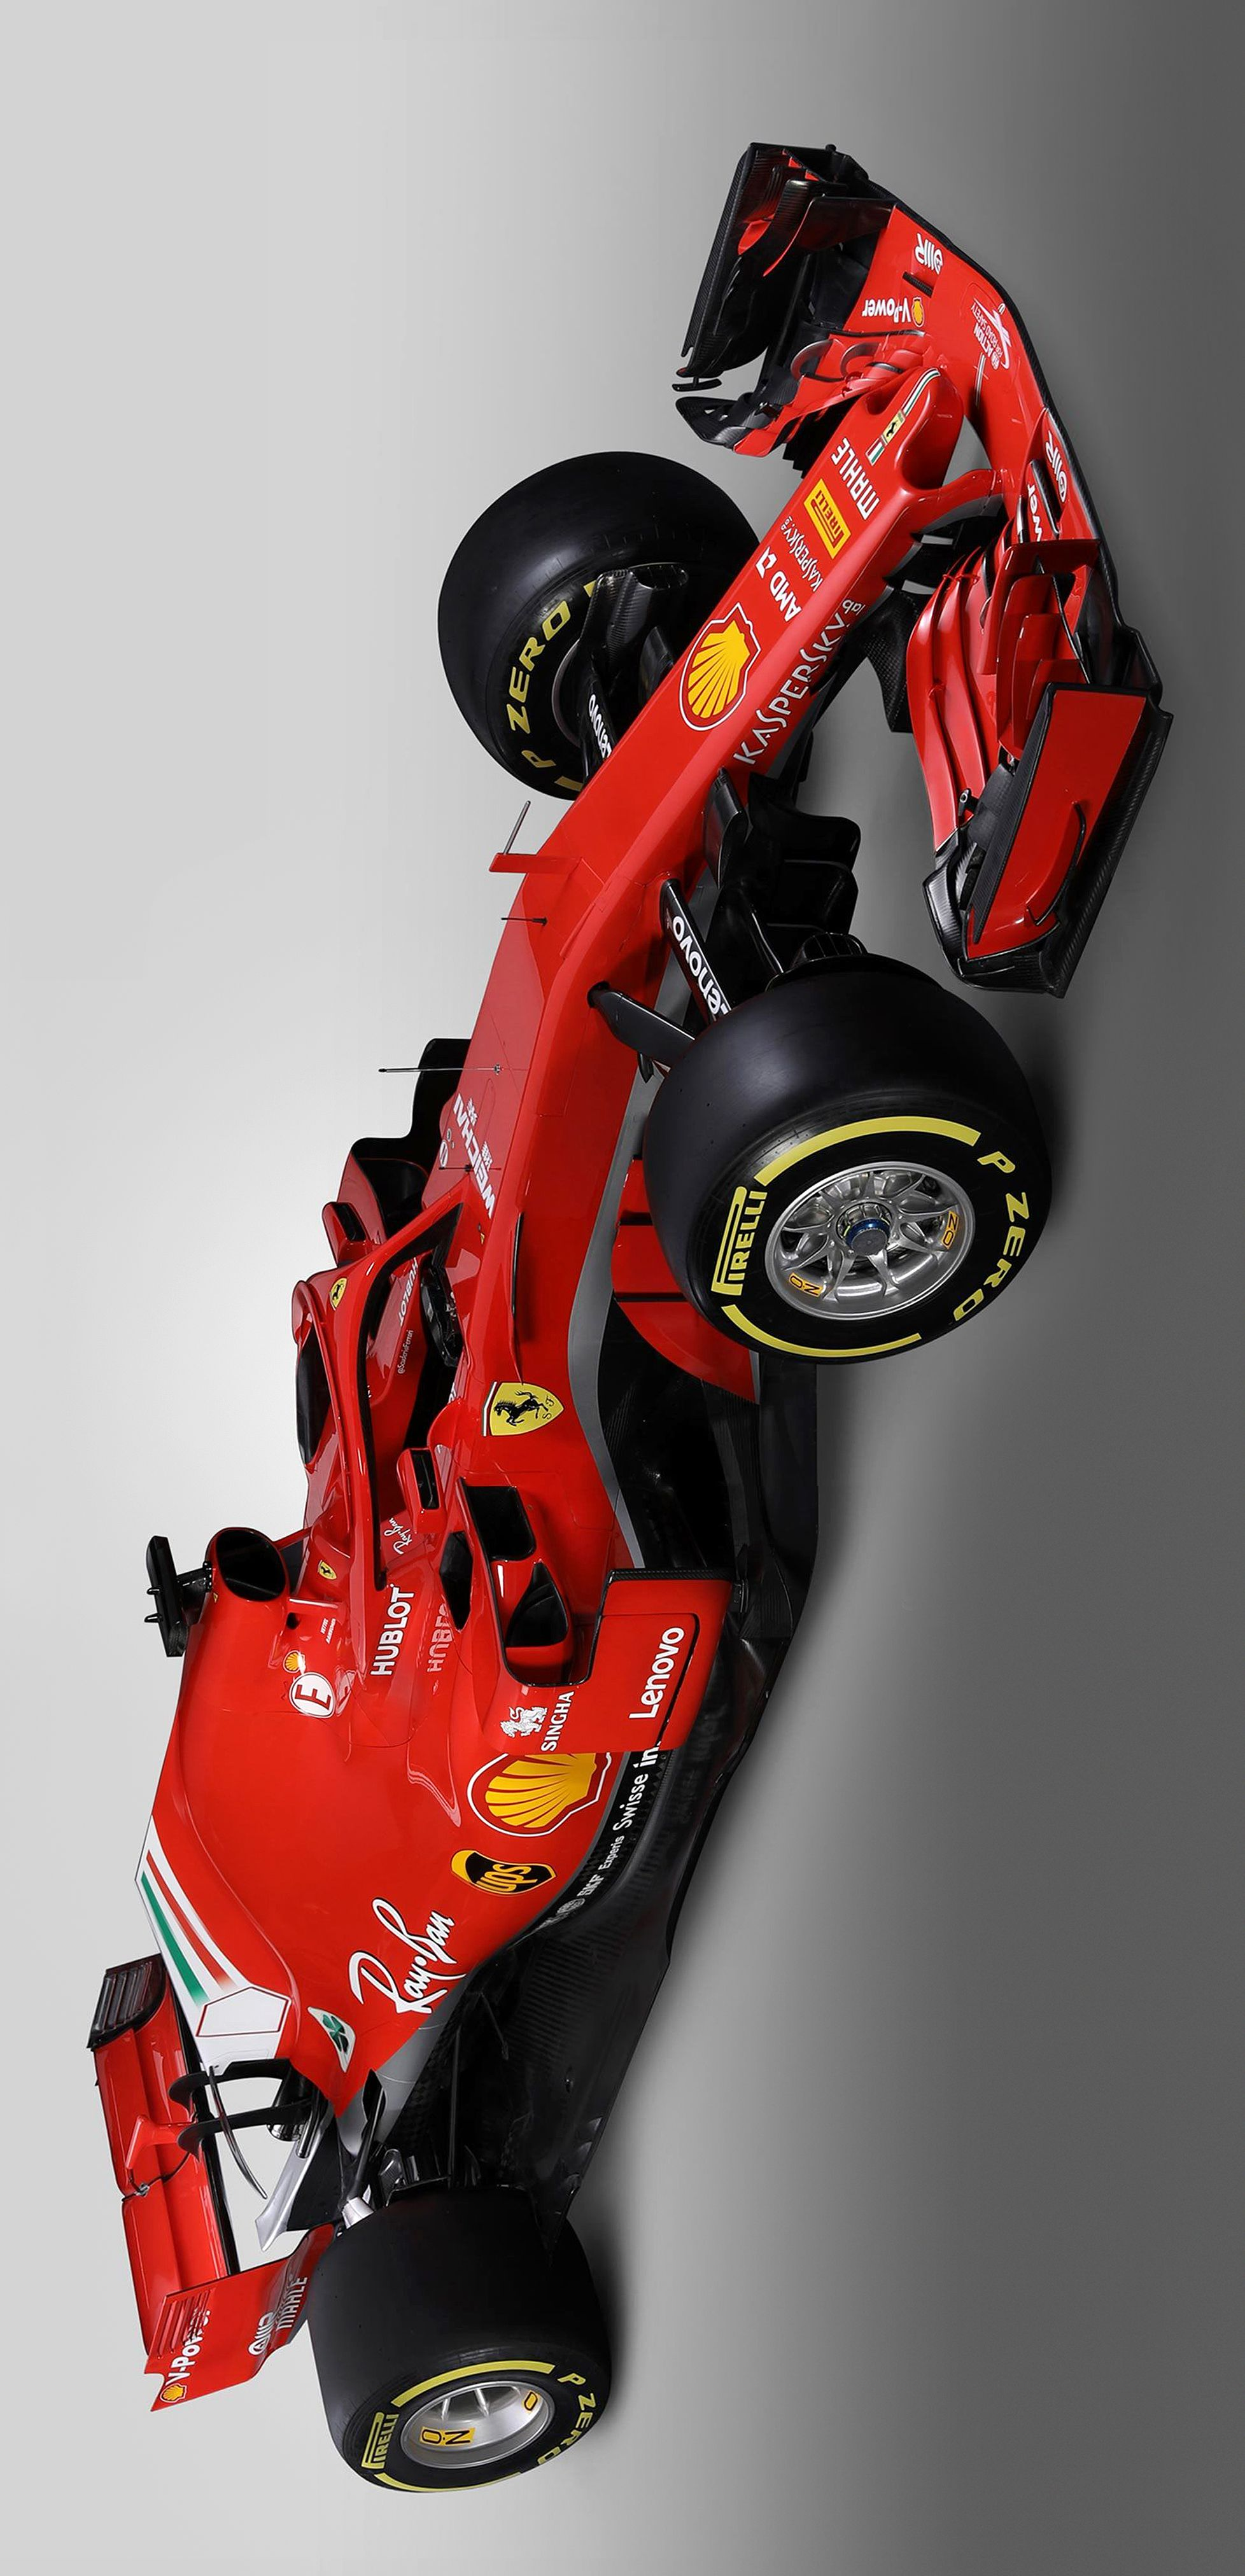 scuderiaferrari here is the new car discover the sf71h sf71h